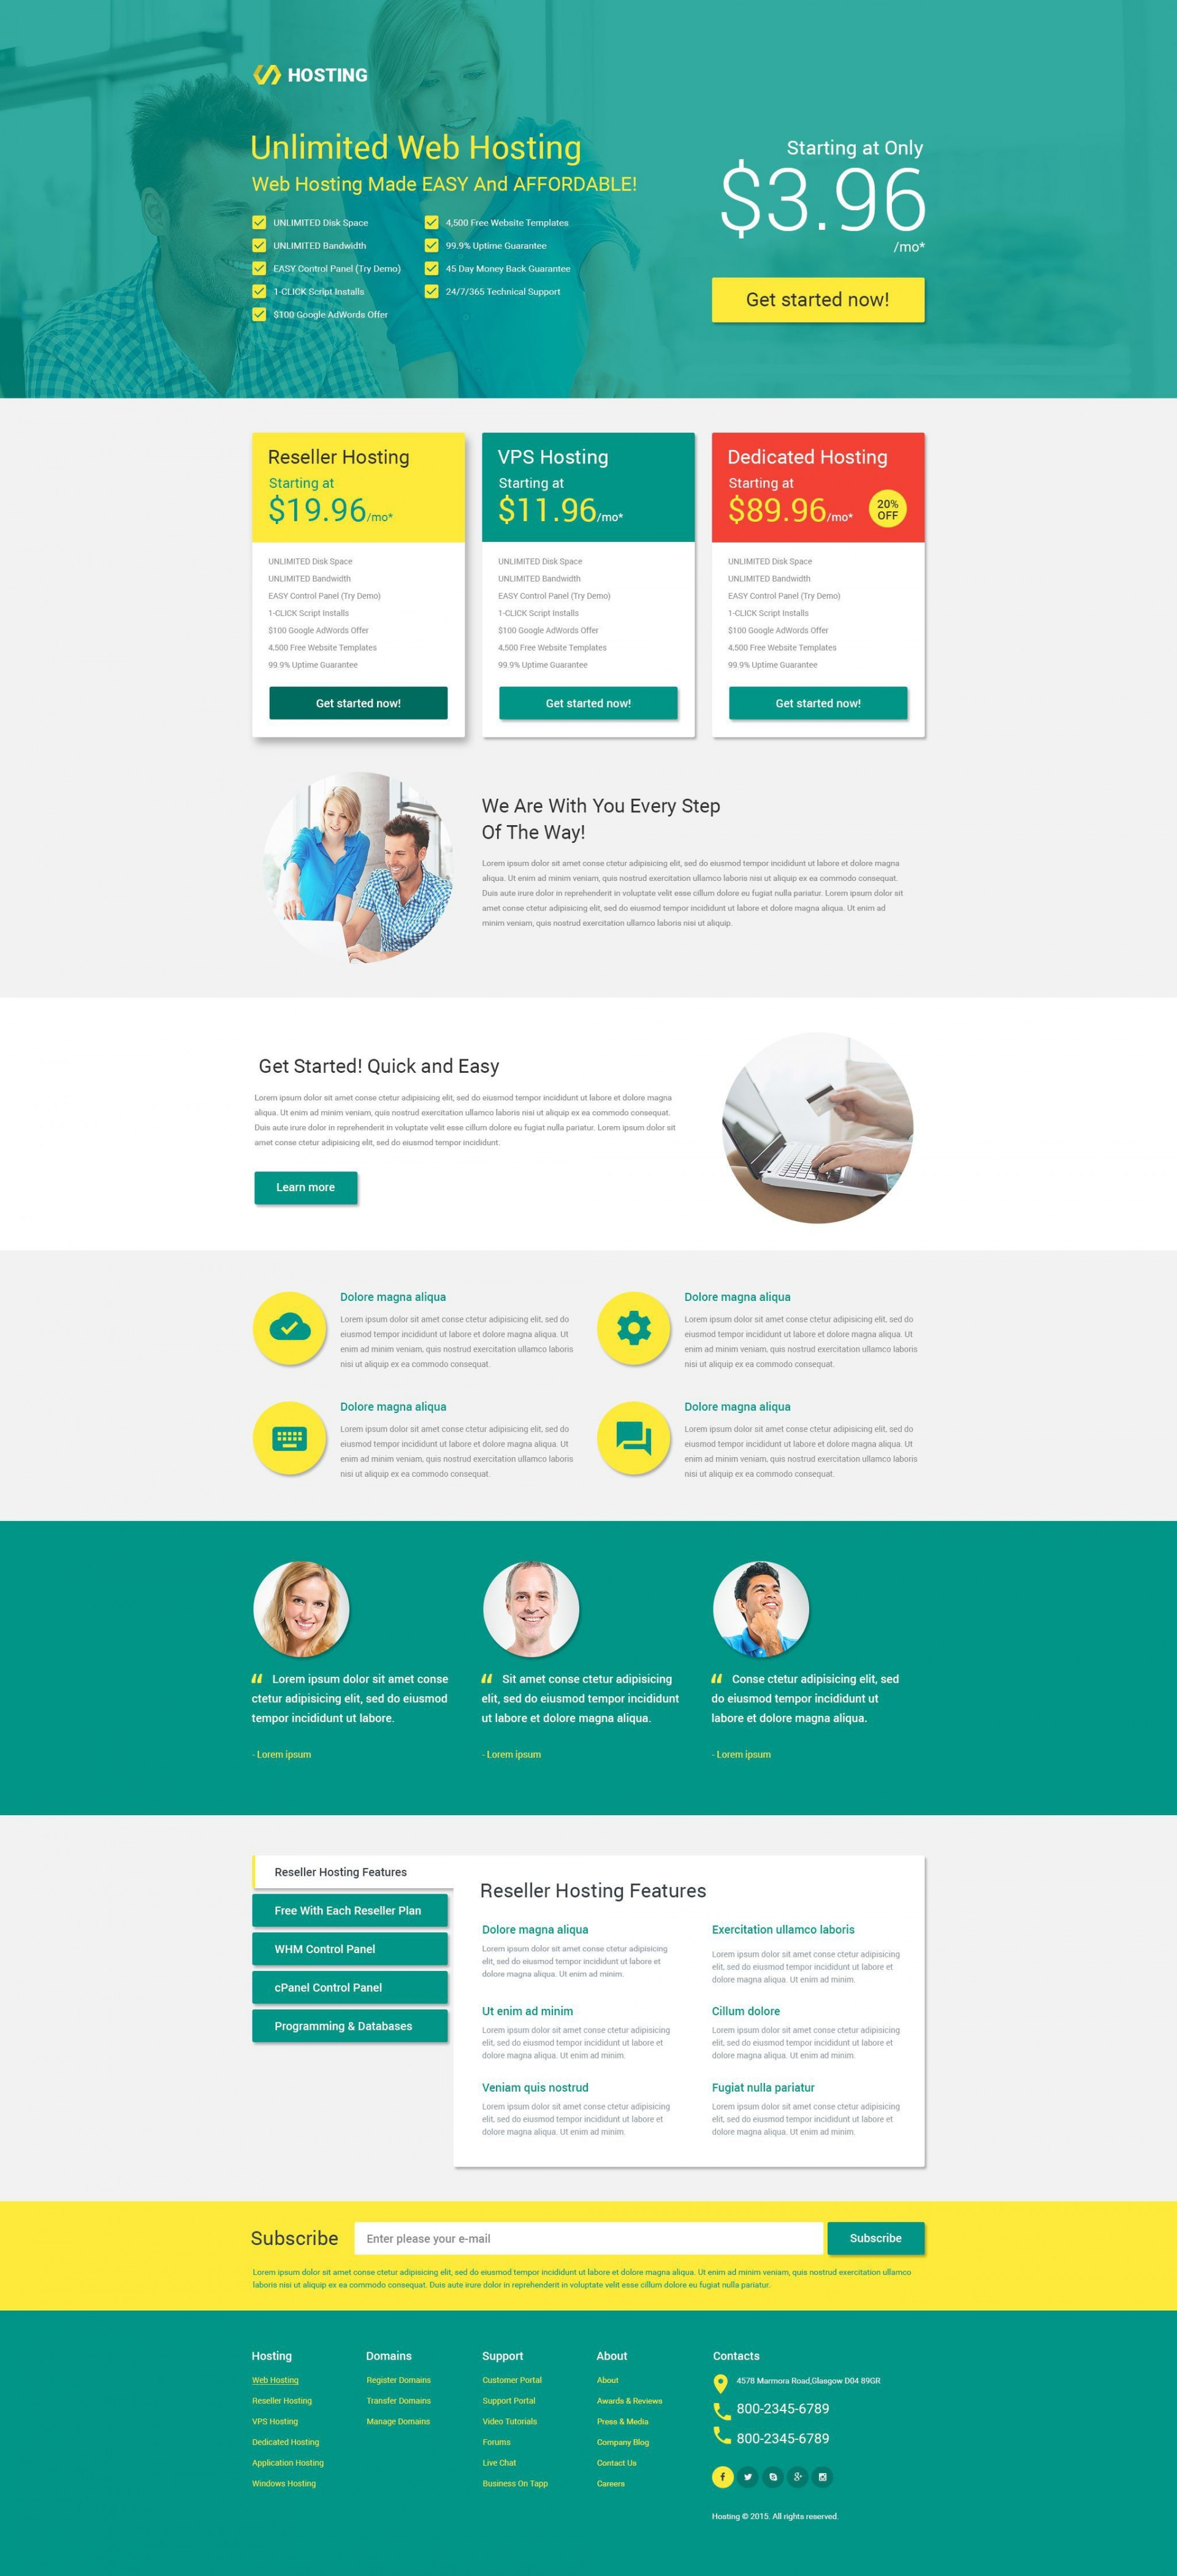 001 Dreaded Responsive Landing Page Template Example  Templates Marketo Free Pardot Html5 Download1920